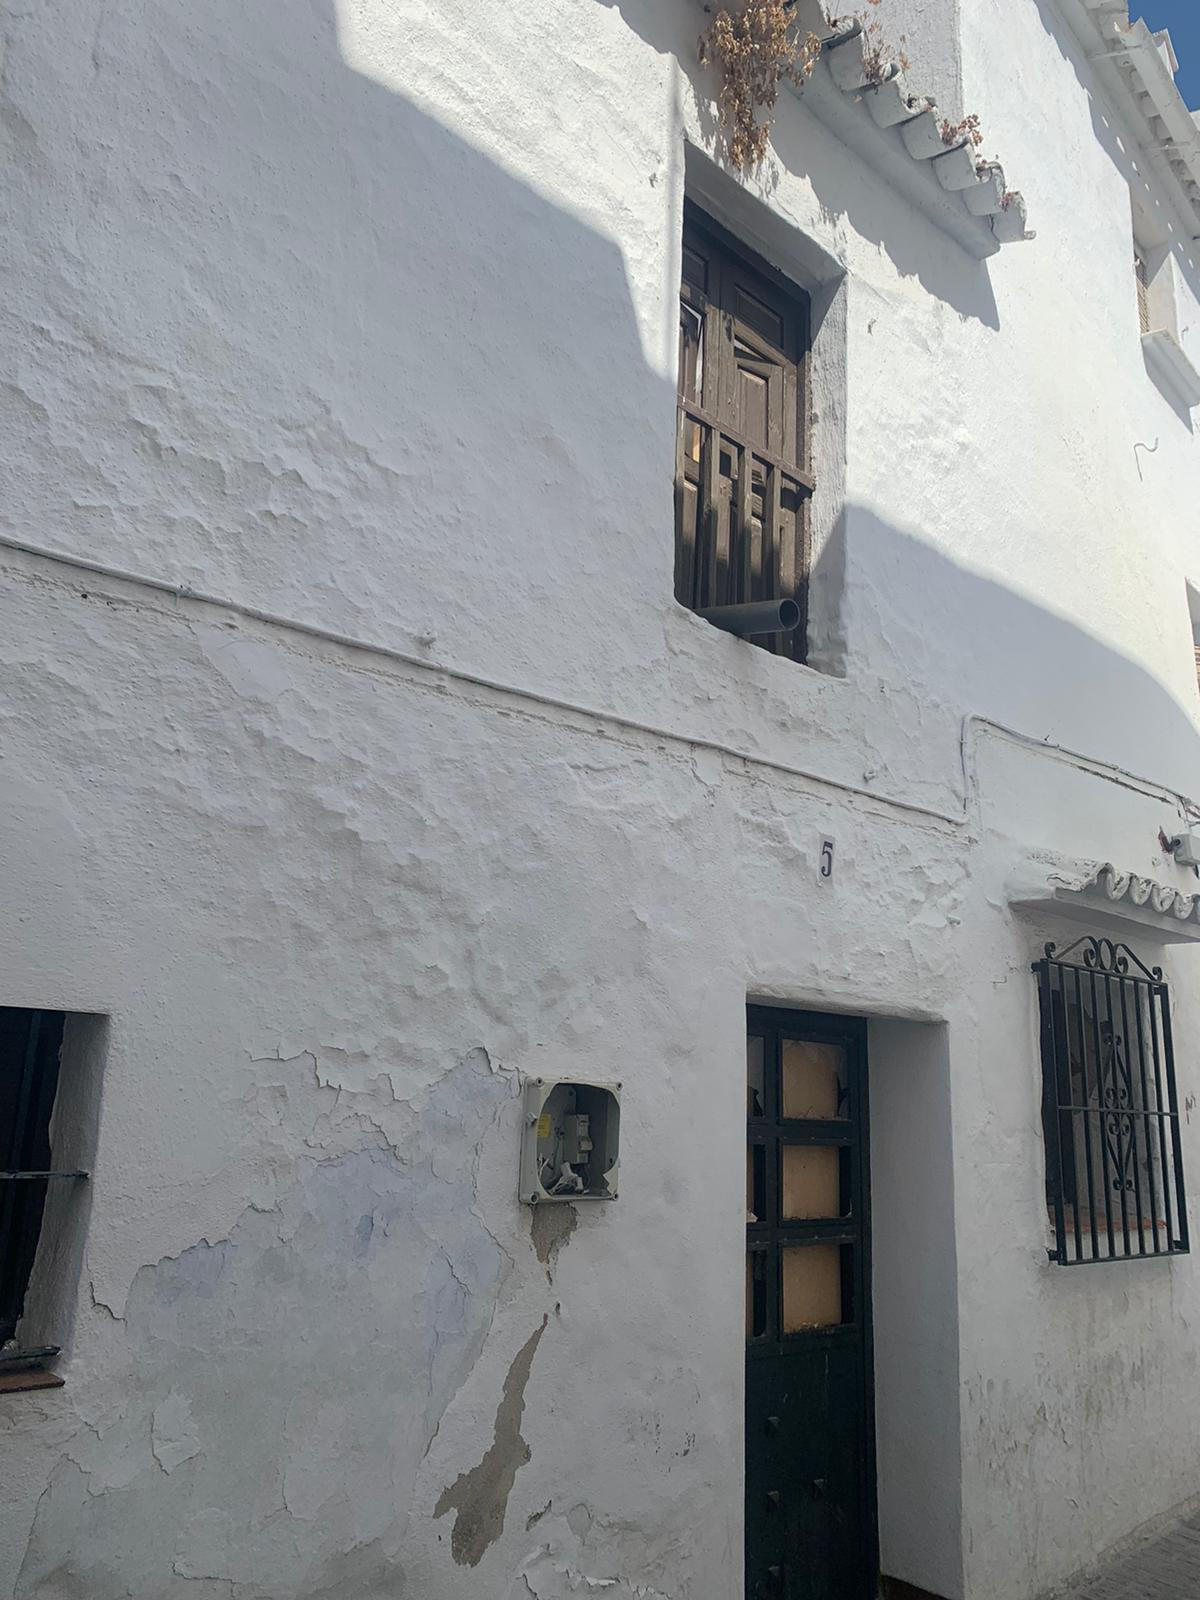 For Sale - Townhouse - Ojén - 1 - homeandhelp.com